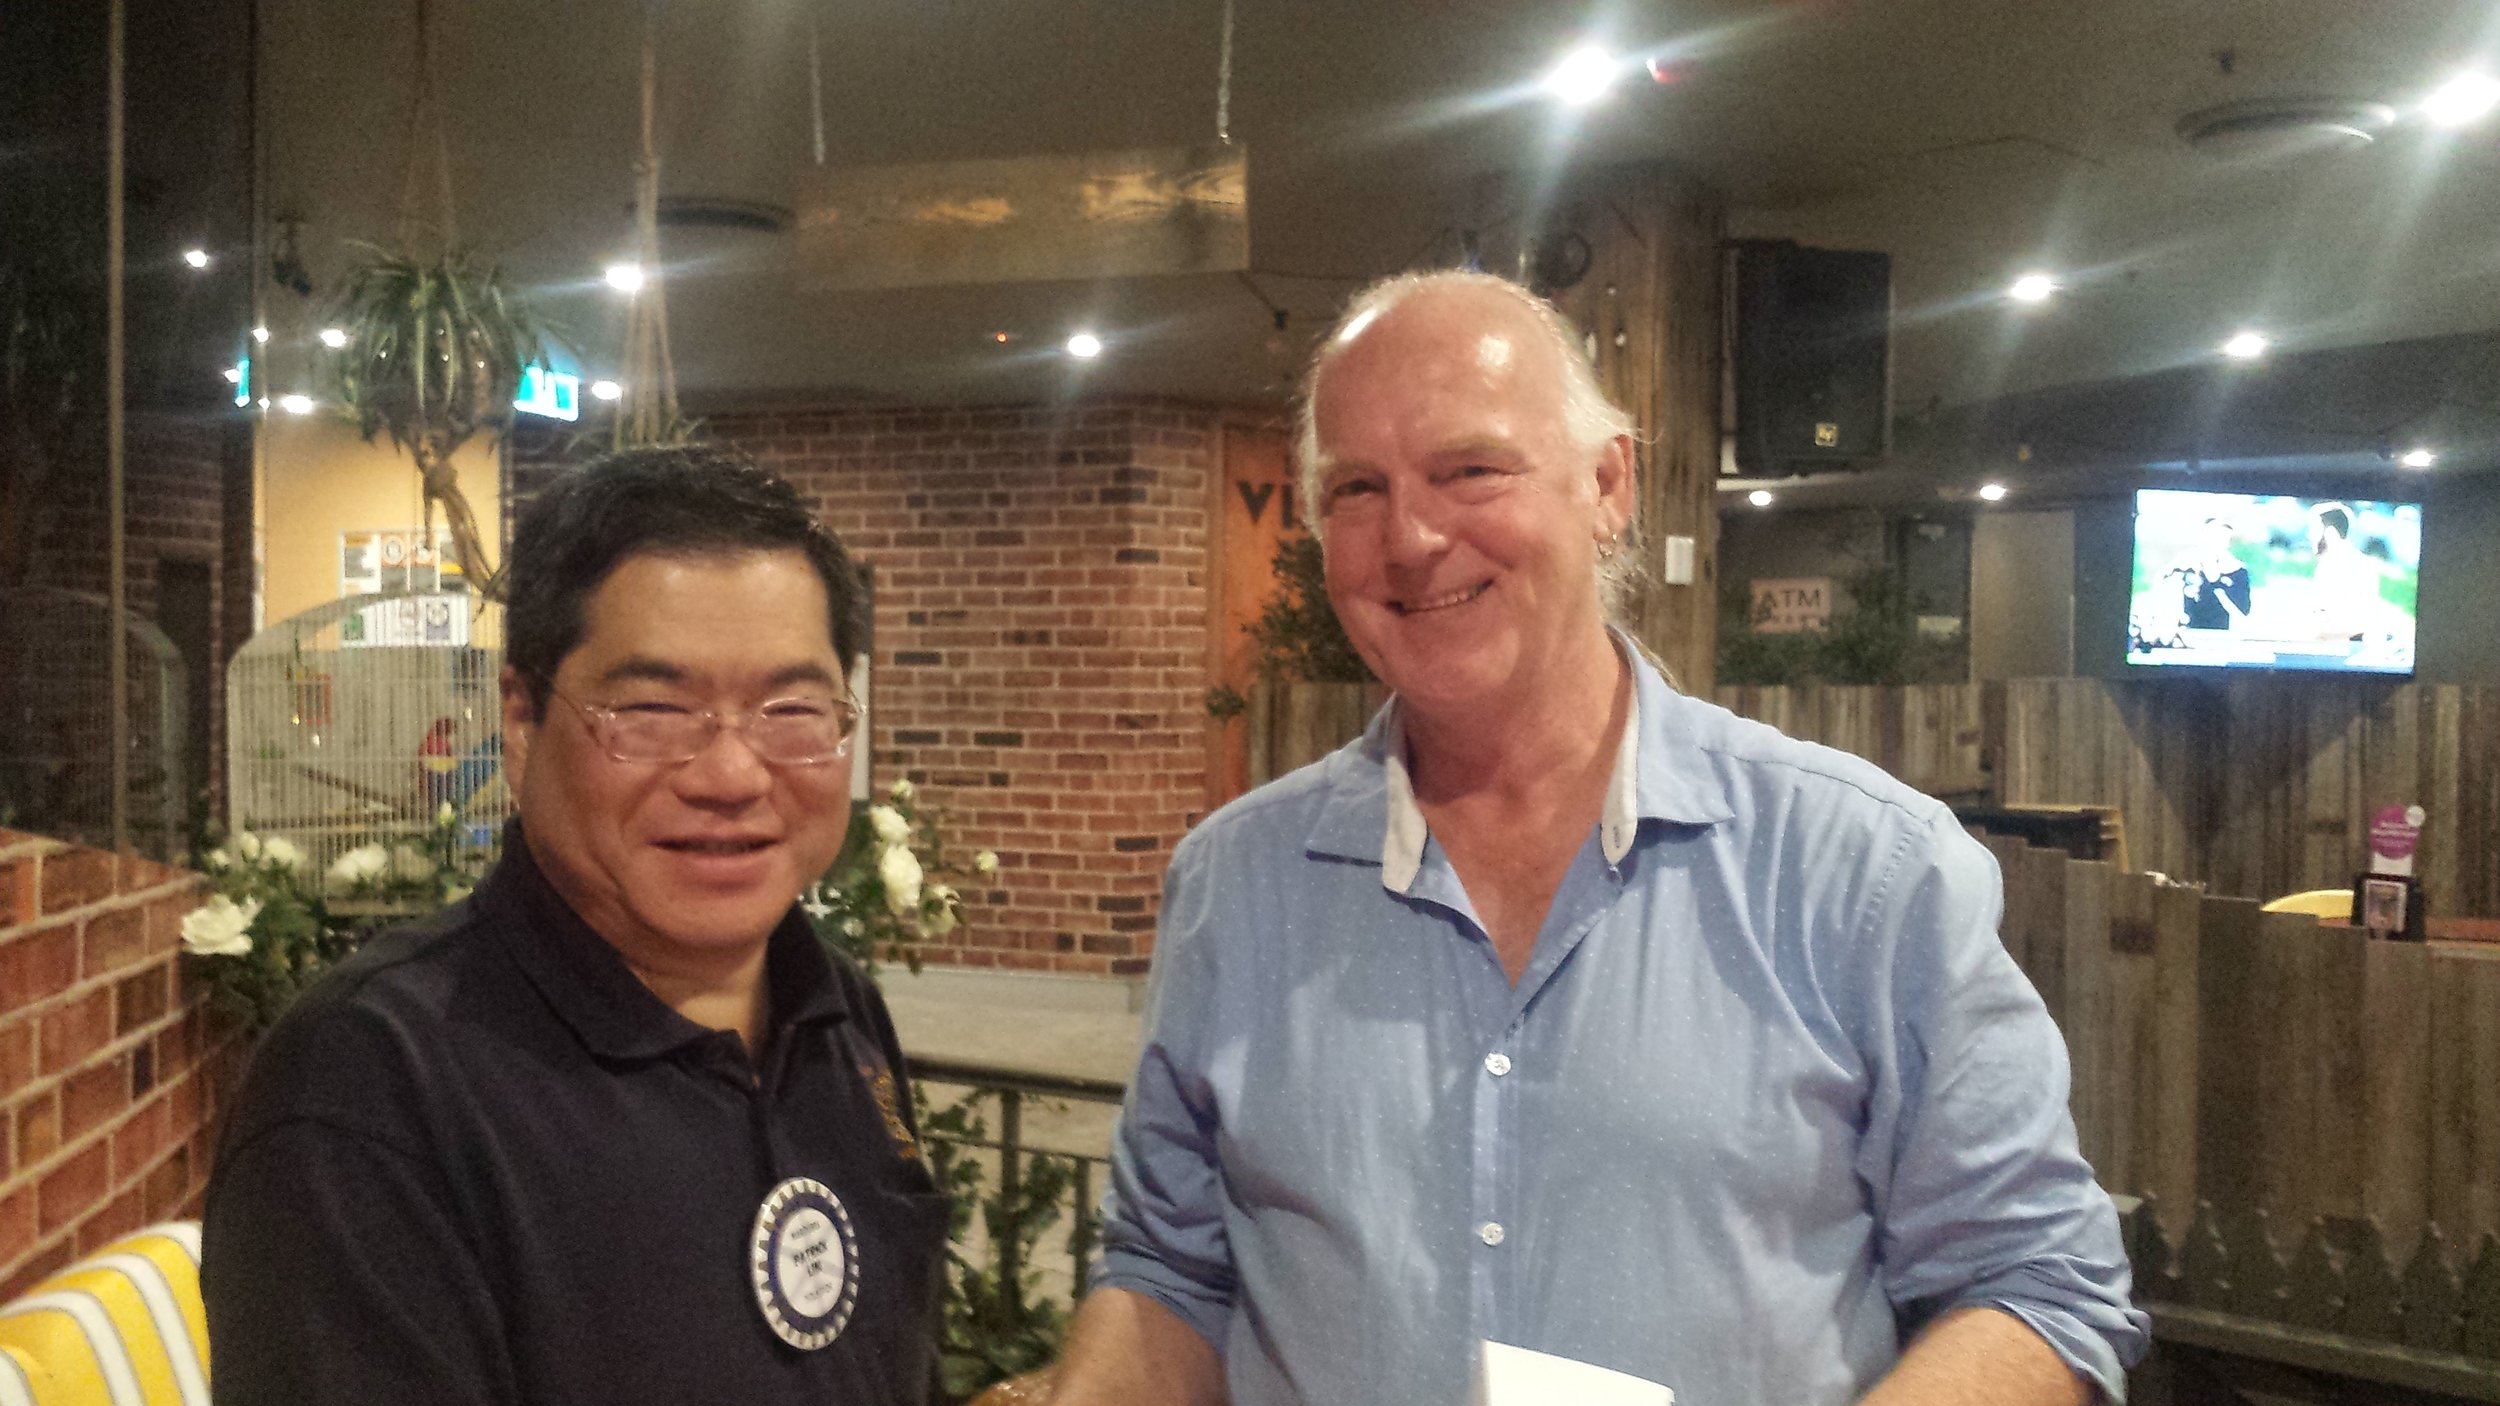 Laurie Matthews with Patrick Lim, President of the Maroubra Rotary Club.